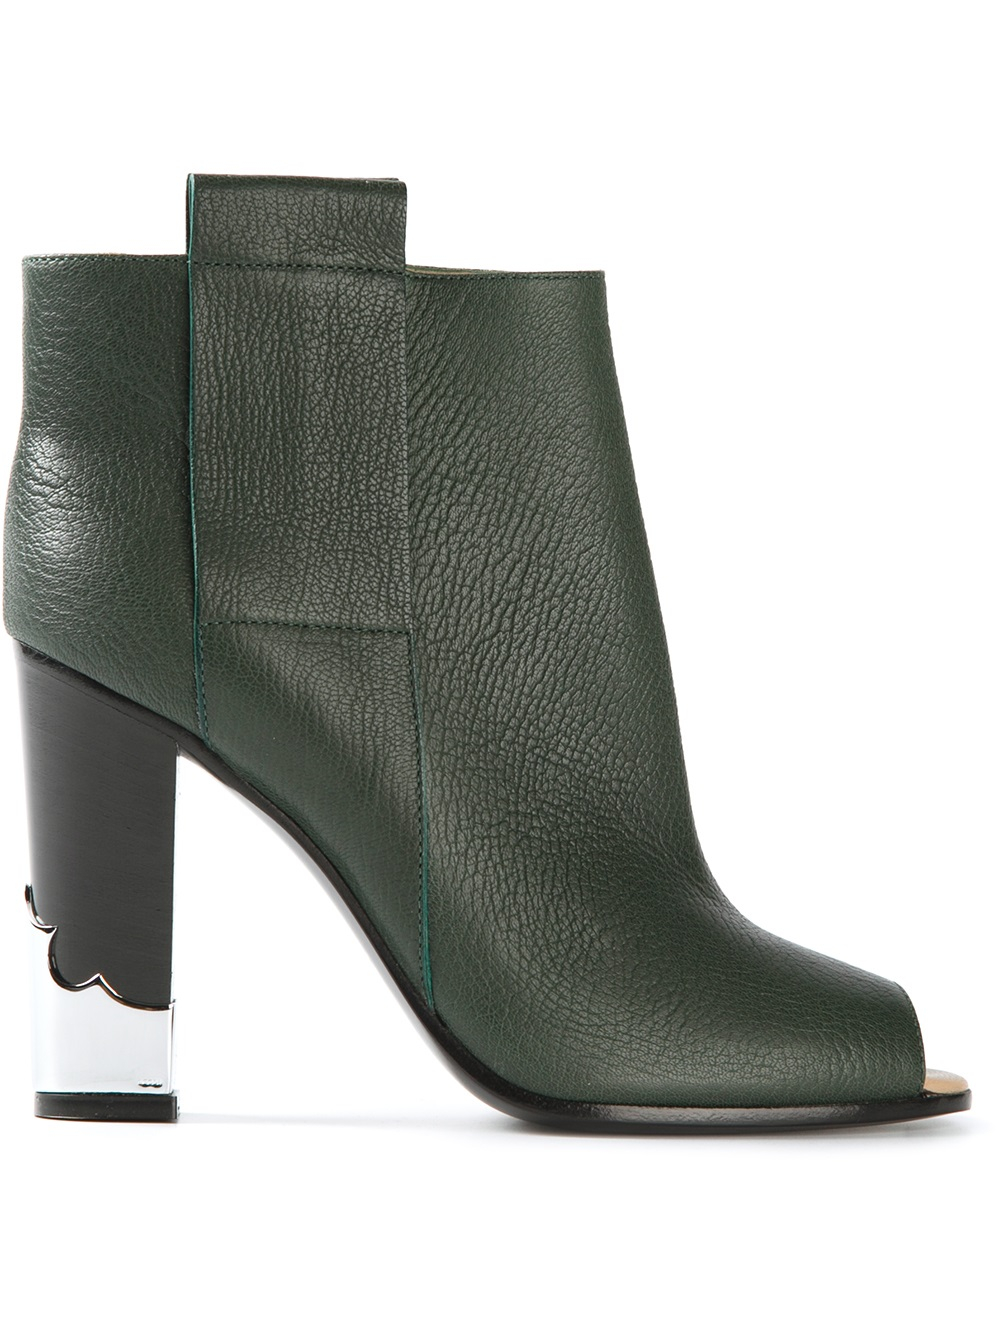 Golden goose deluxe brand Peep Toe Ankle Boots in Green | Lyst